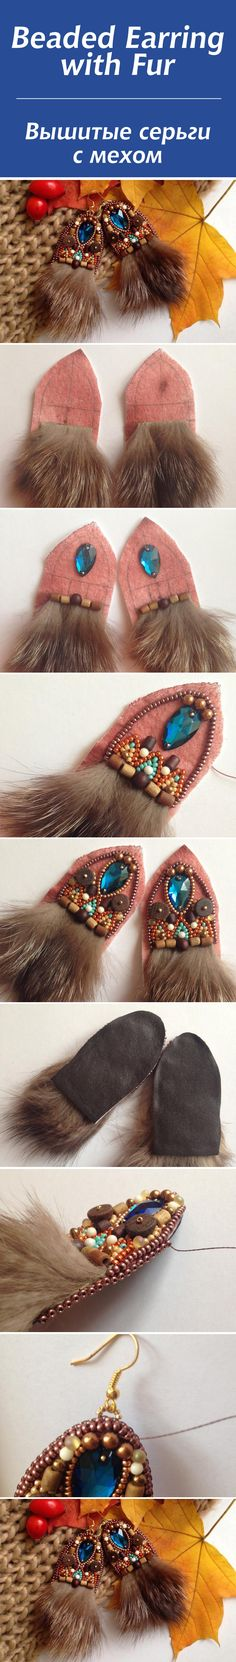 Вышитые серьги с мехом #bead #beadwork with tassels or ribbon INSTEAD of fut